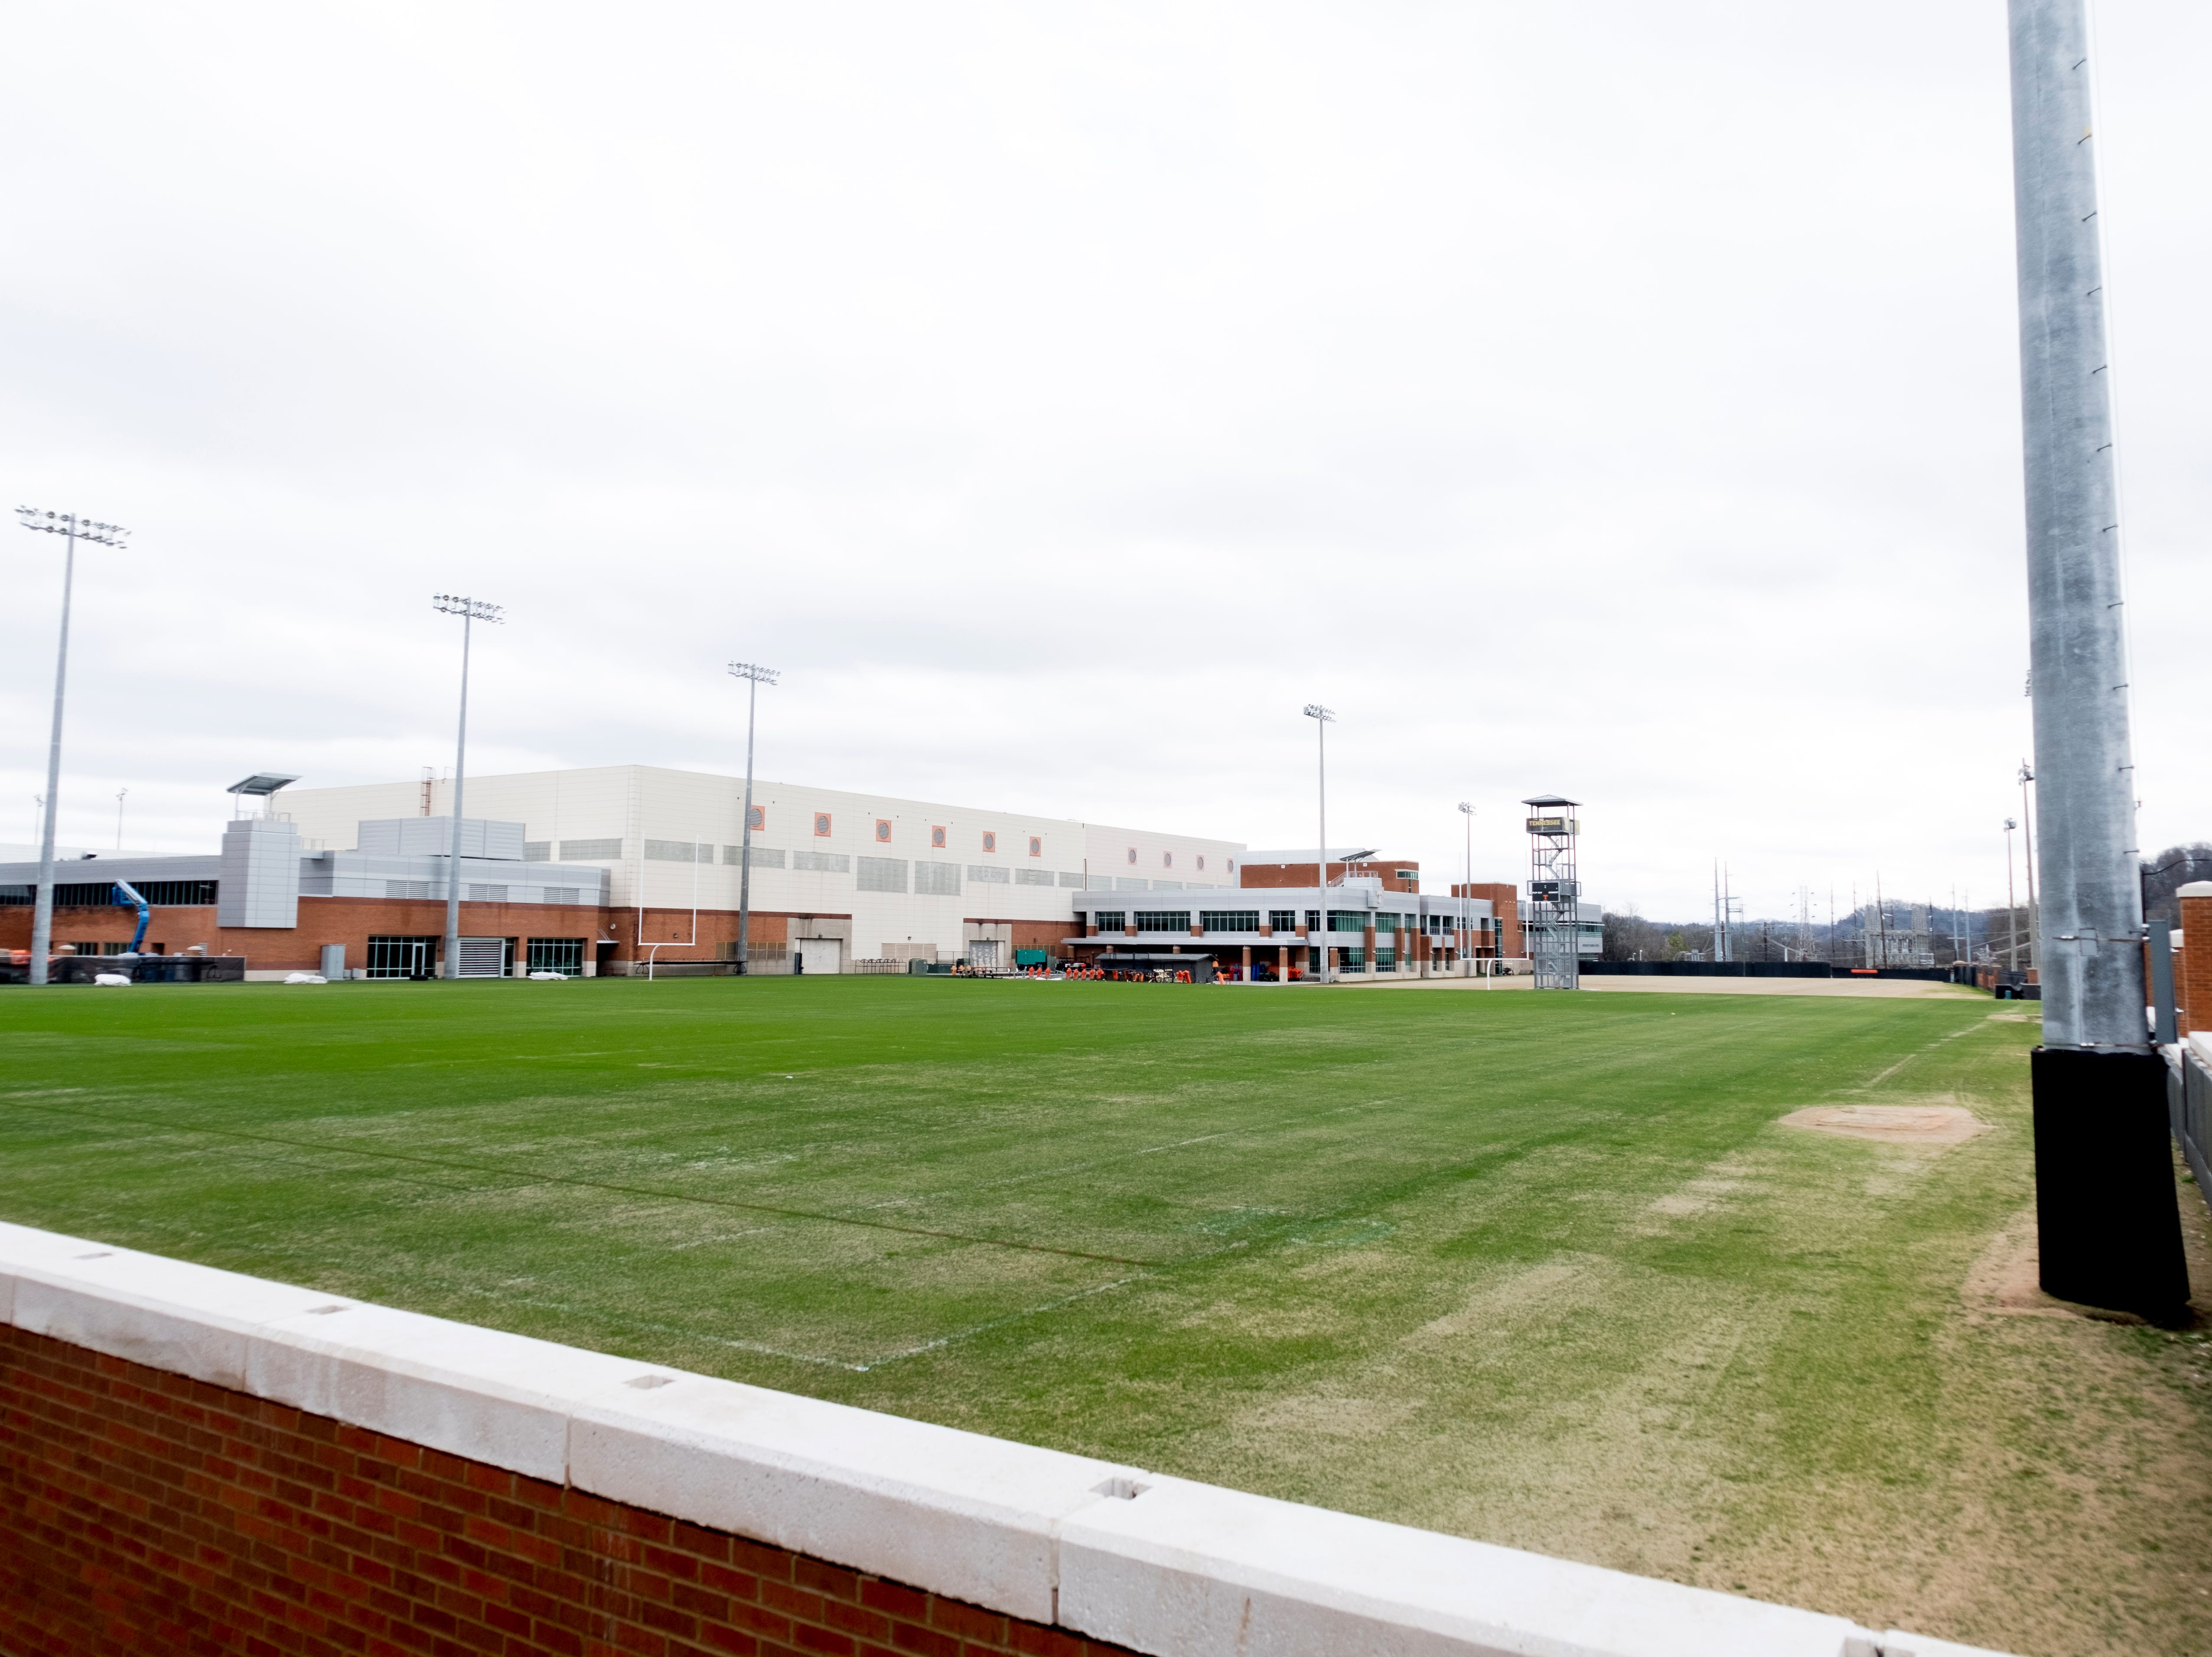 Haslam Field on the University of Tennessee campus in Knoxville, Tennessee on Tuesday, January 1, 2019.